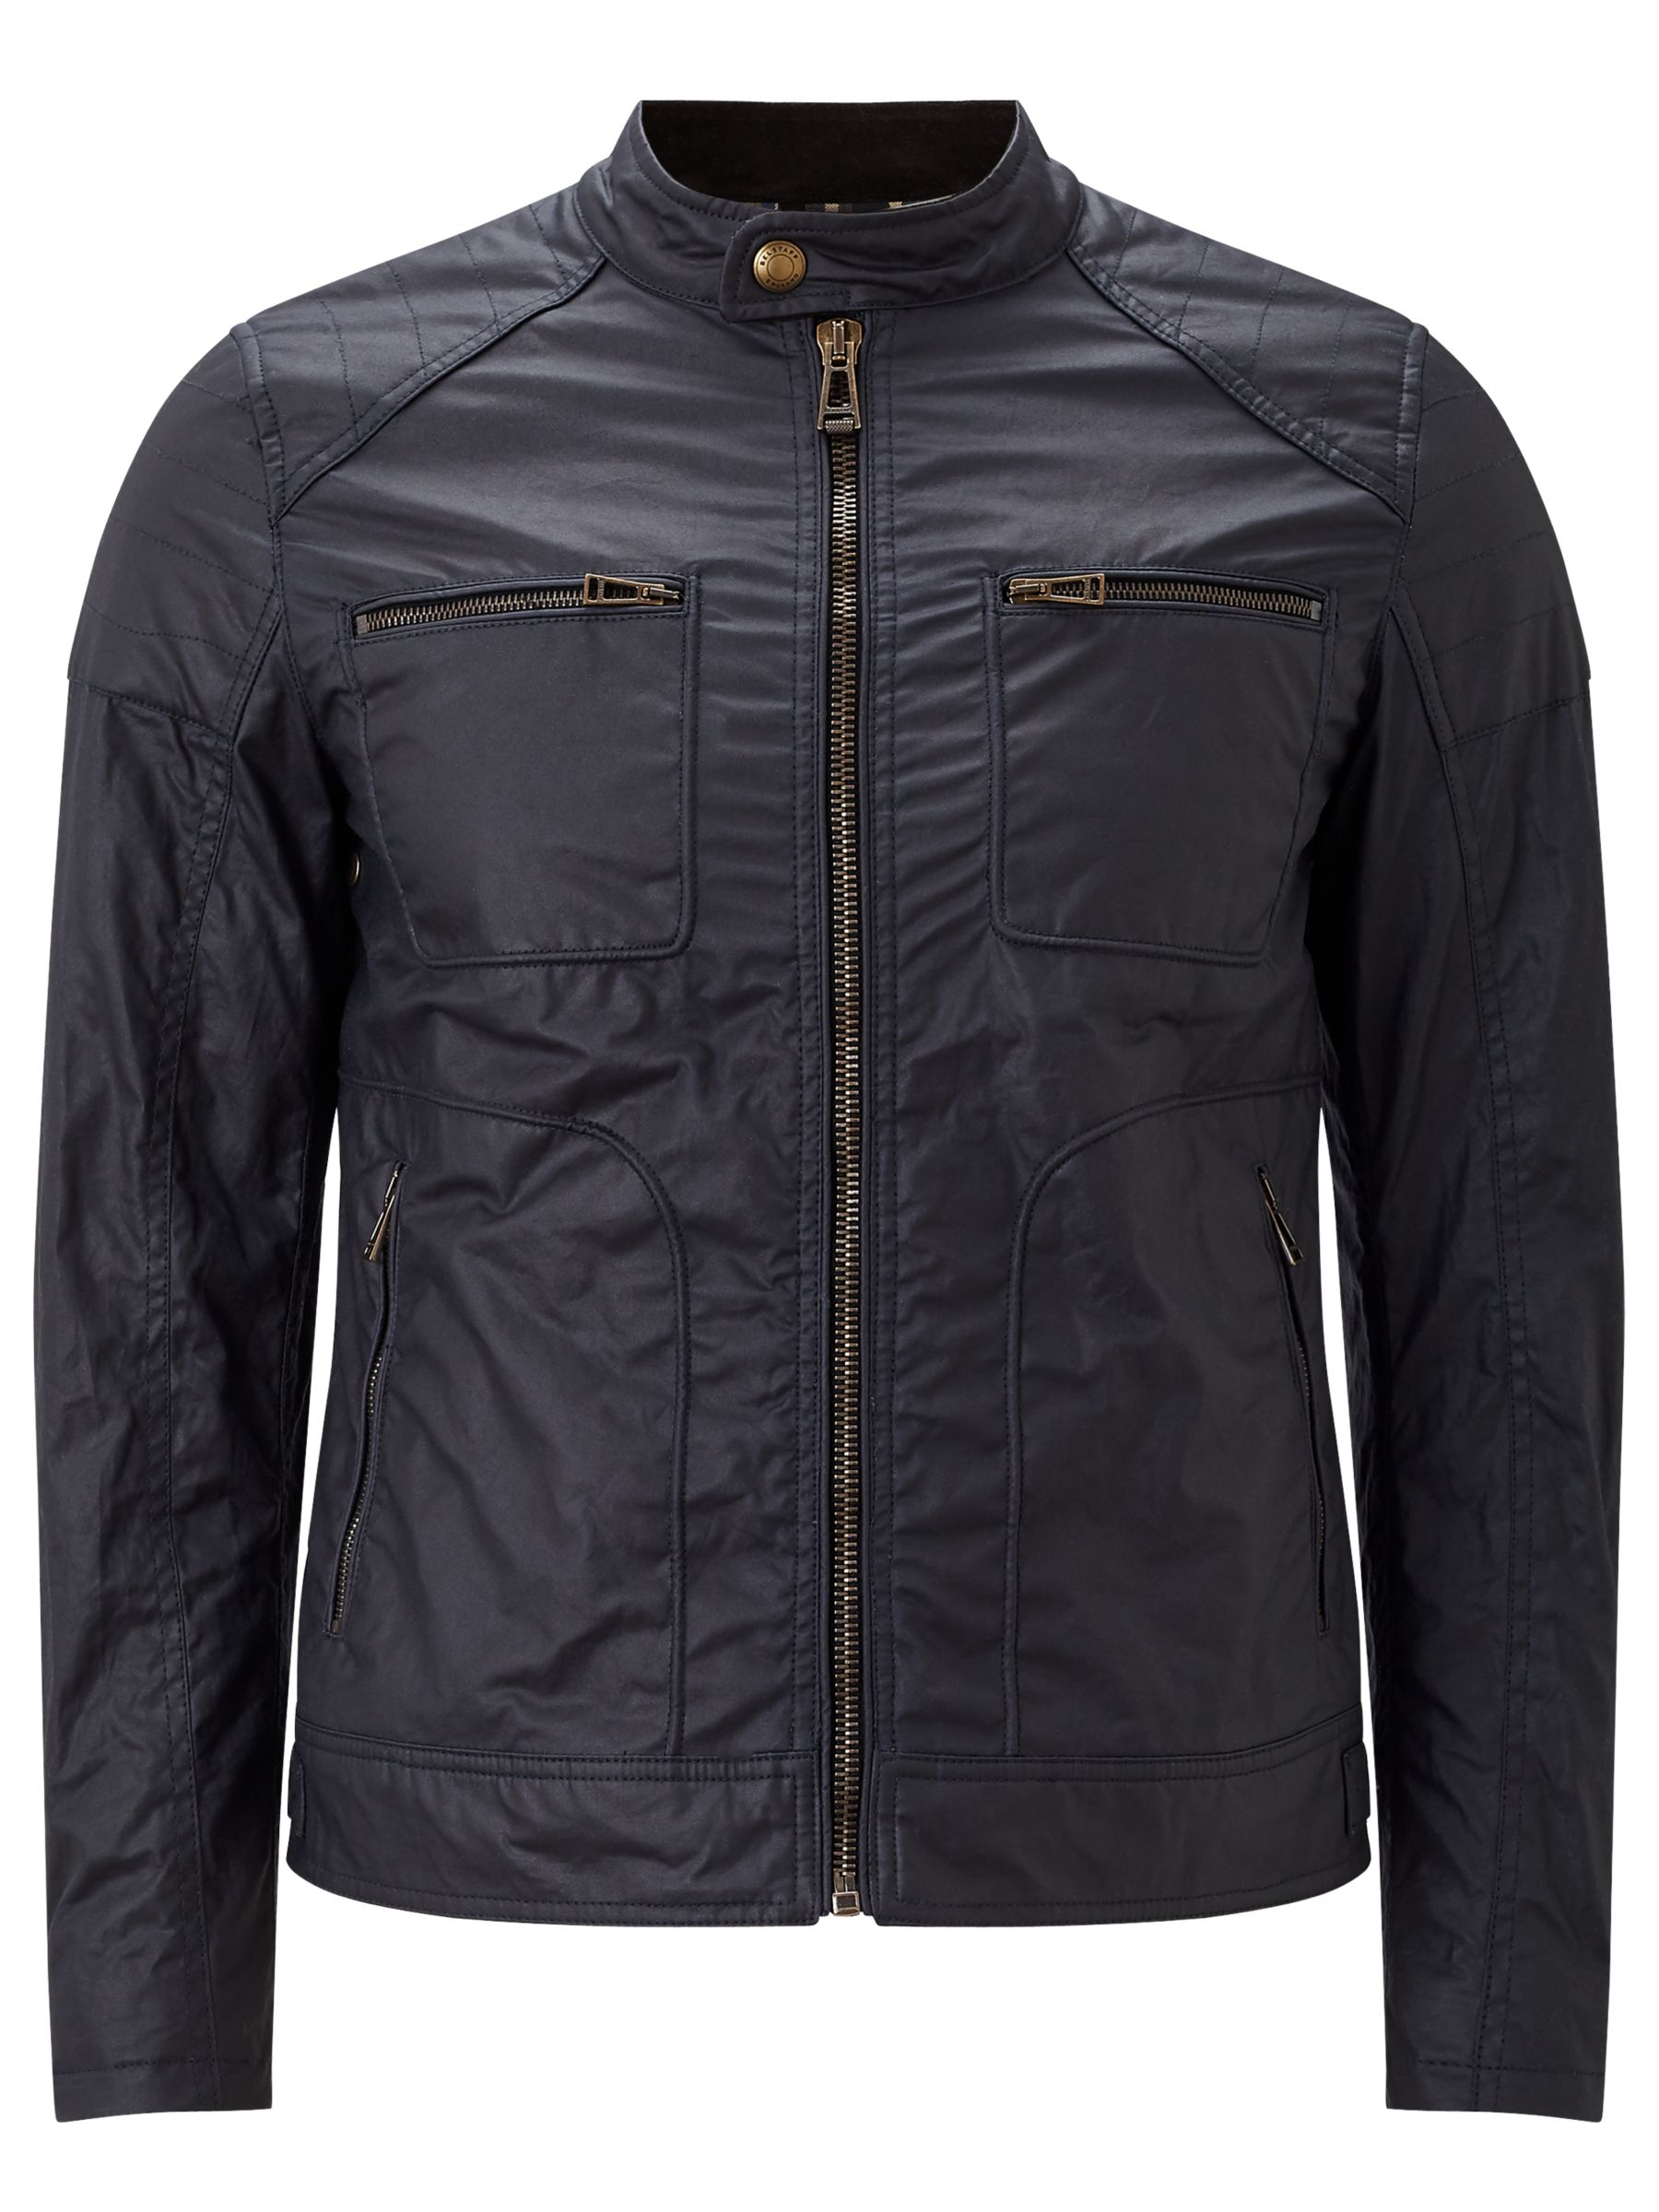 Belstaff Belstaff Weybridge Wax Cotton Jacket, Dark Navy